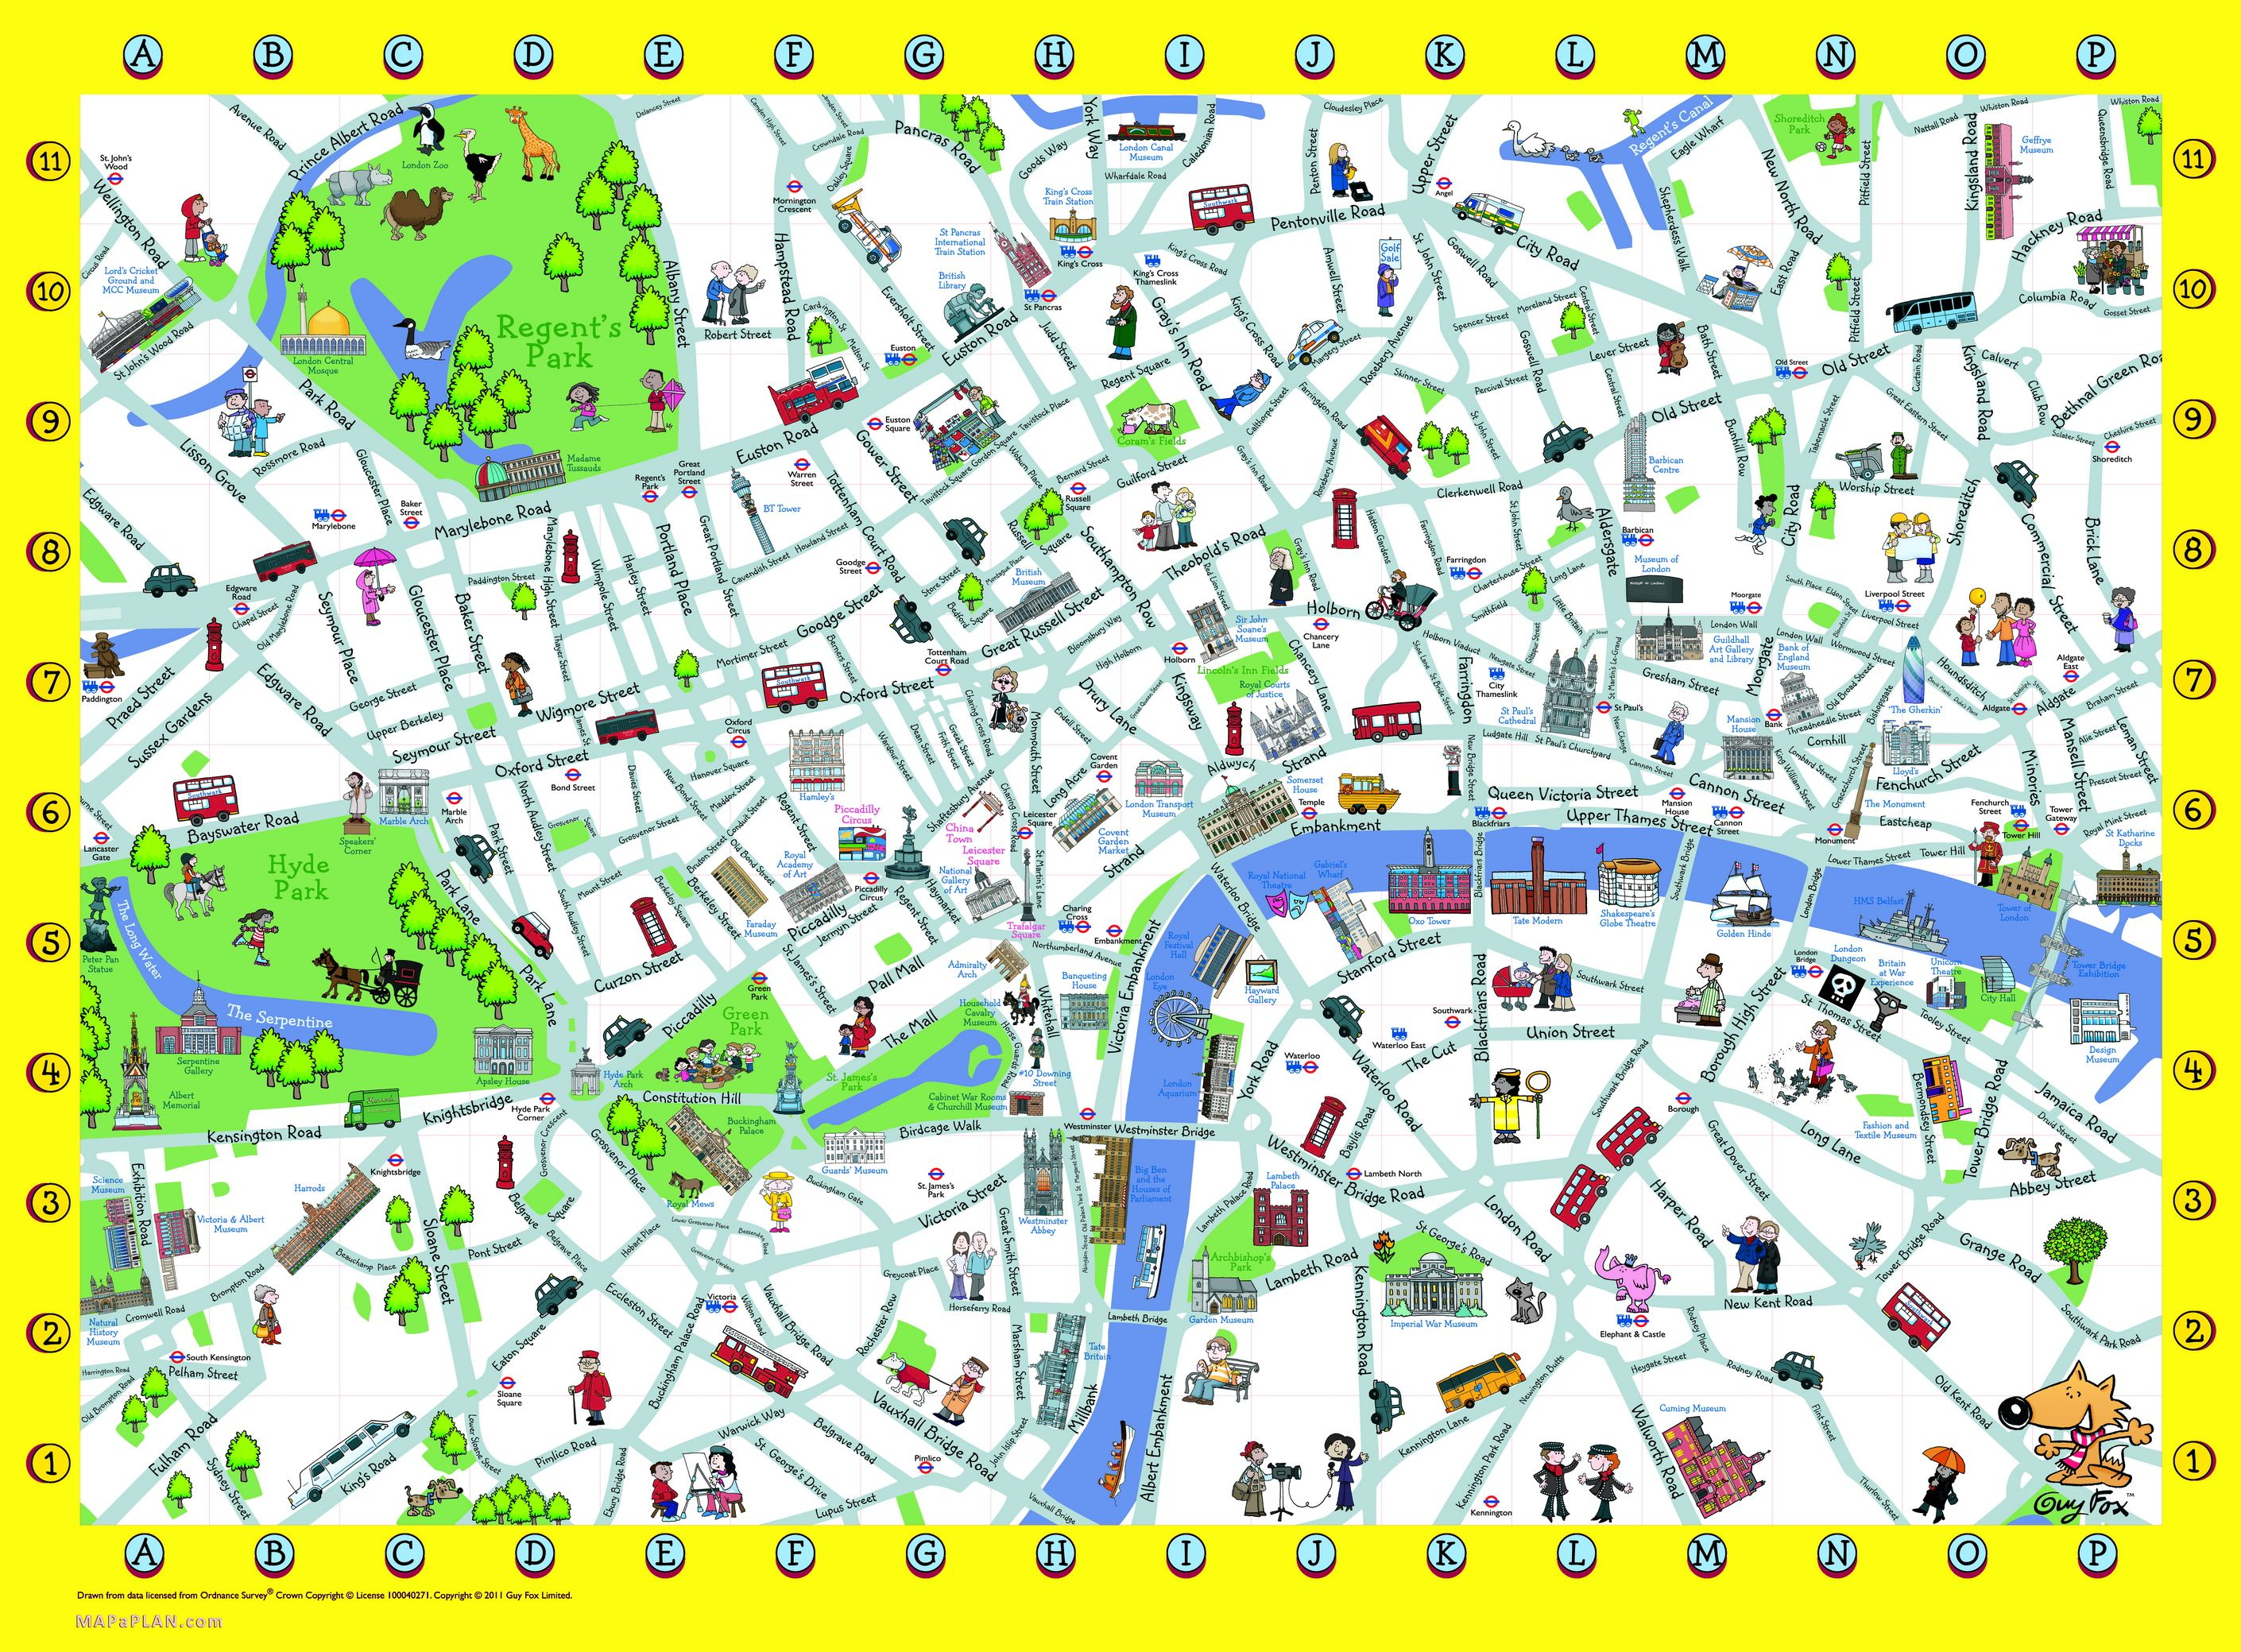 London Detailed Landmark Map | London Maps - Top Tourist Attractions - Printable Map Of London